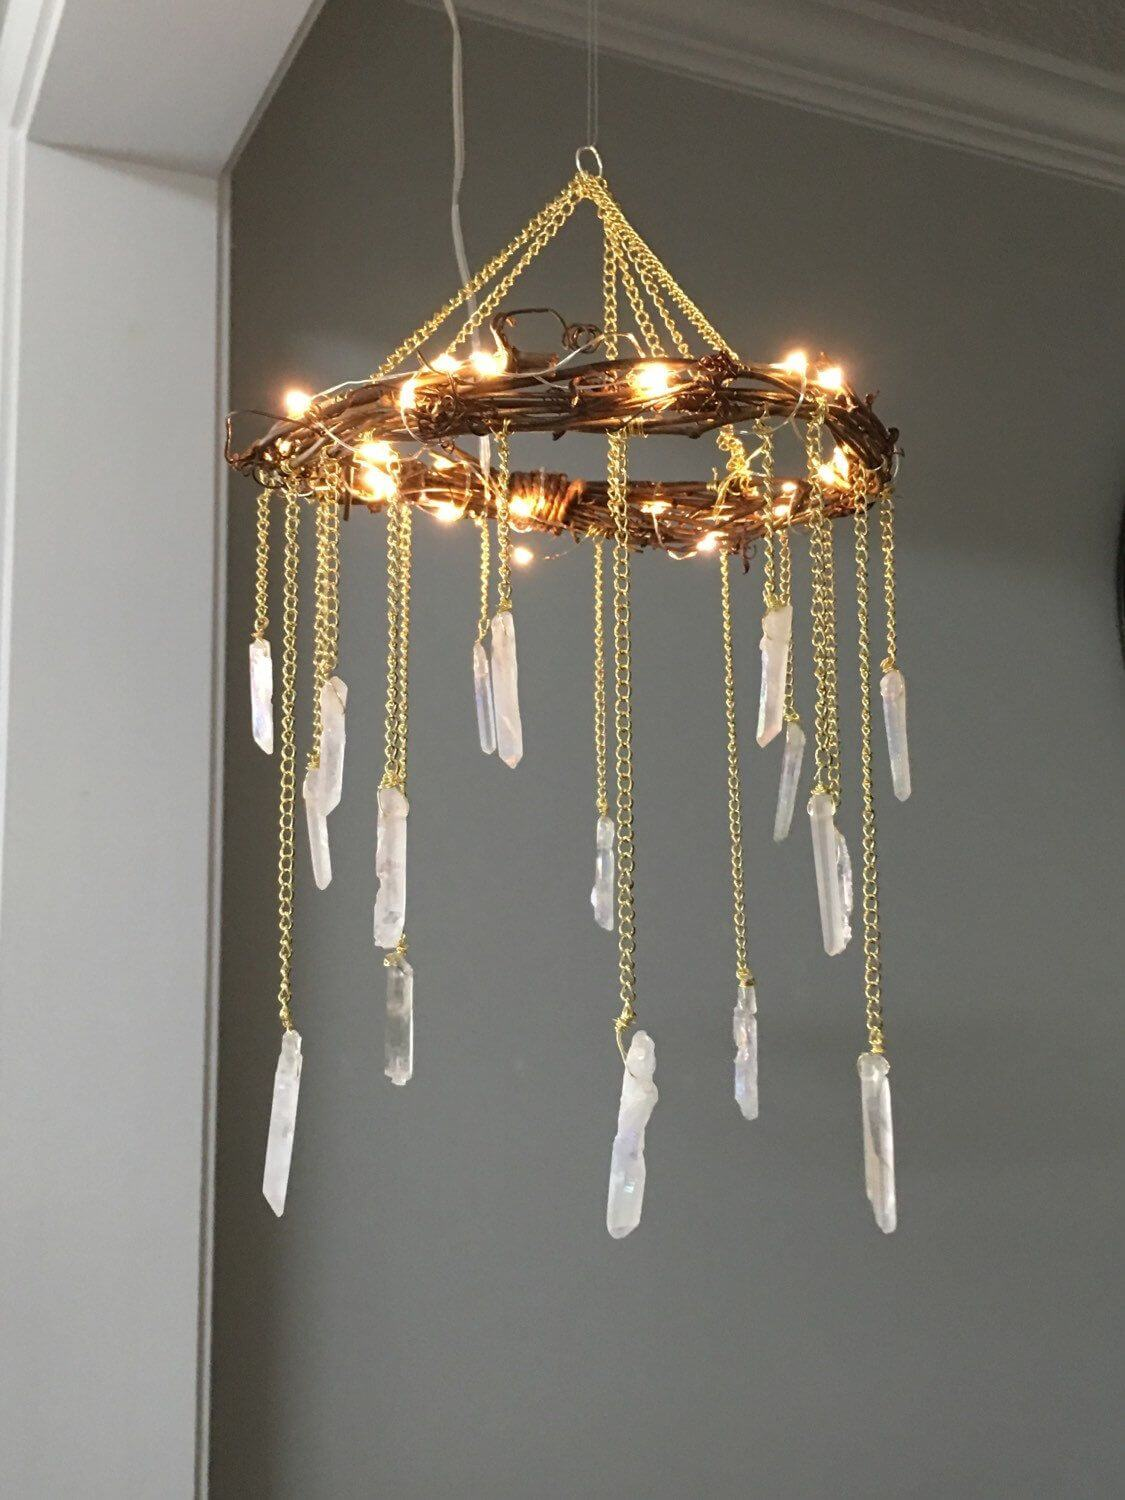 White Stones Dangling from Gold Chandelier